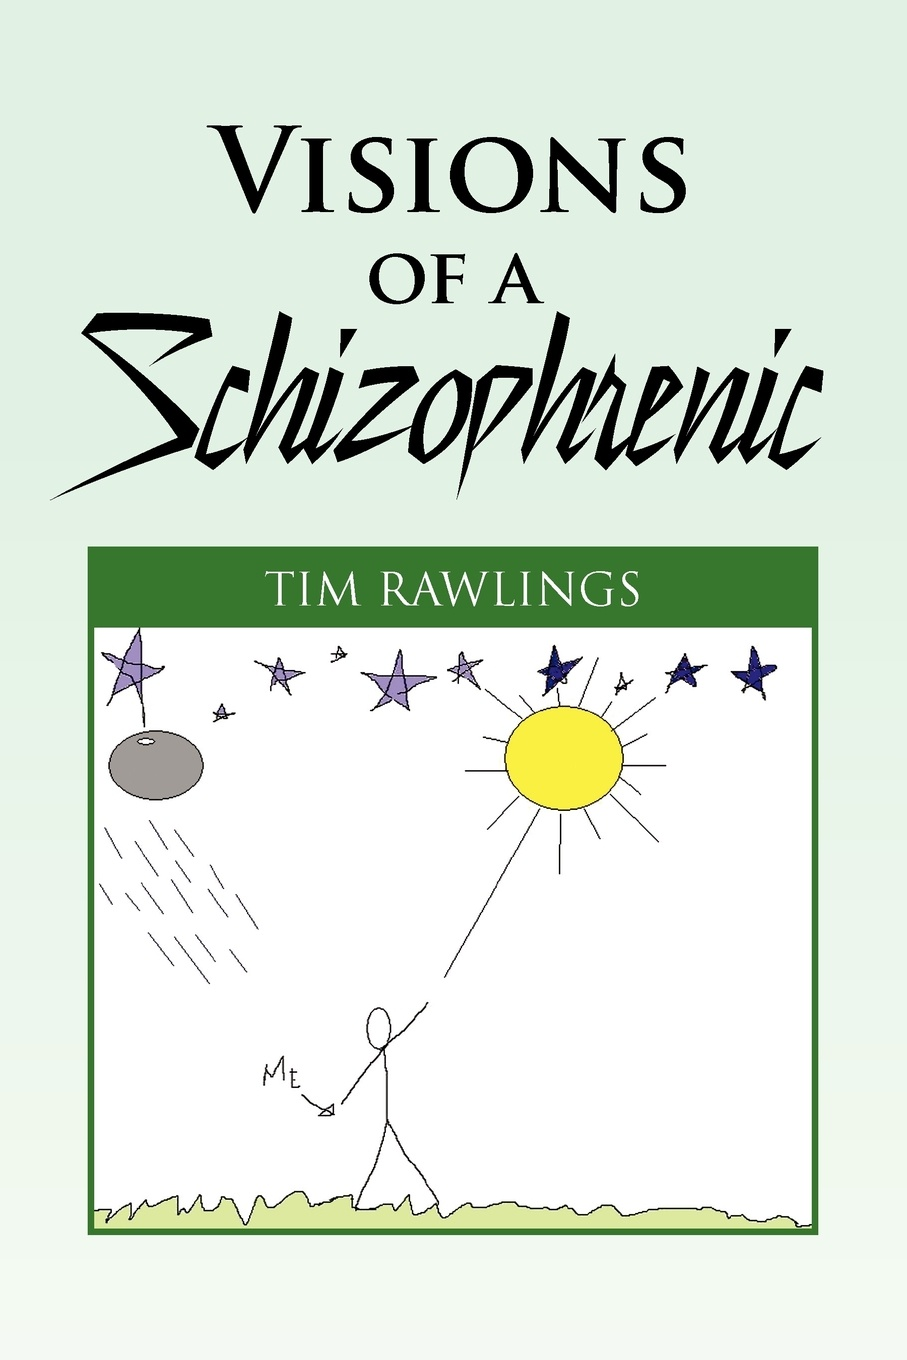 Tim Rawlings Visions of a Schizophrenic